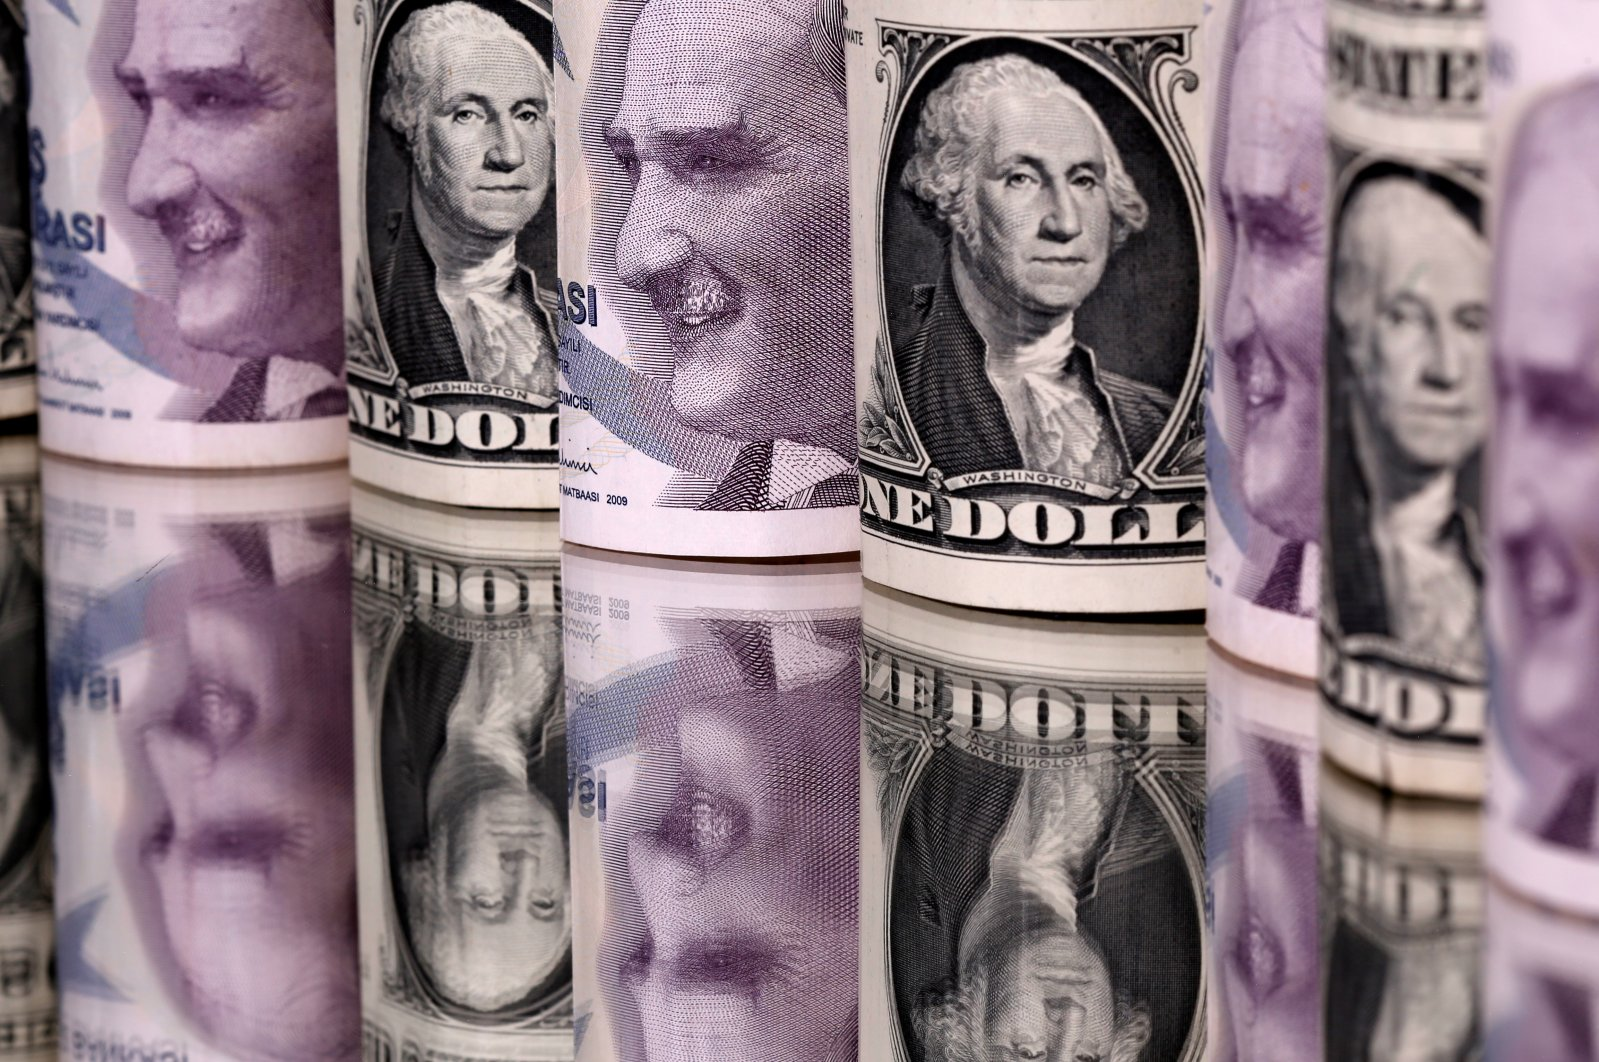 The Turkish lira and U.S. dollar banknotes are seen in this illustration taken Jan. 6, 2020. (Reuters Photo)